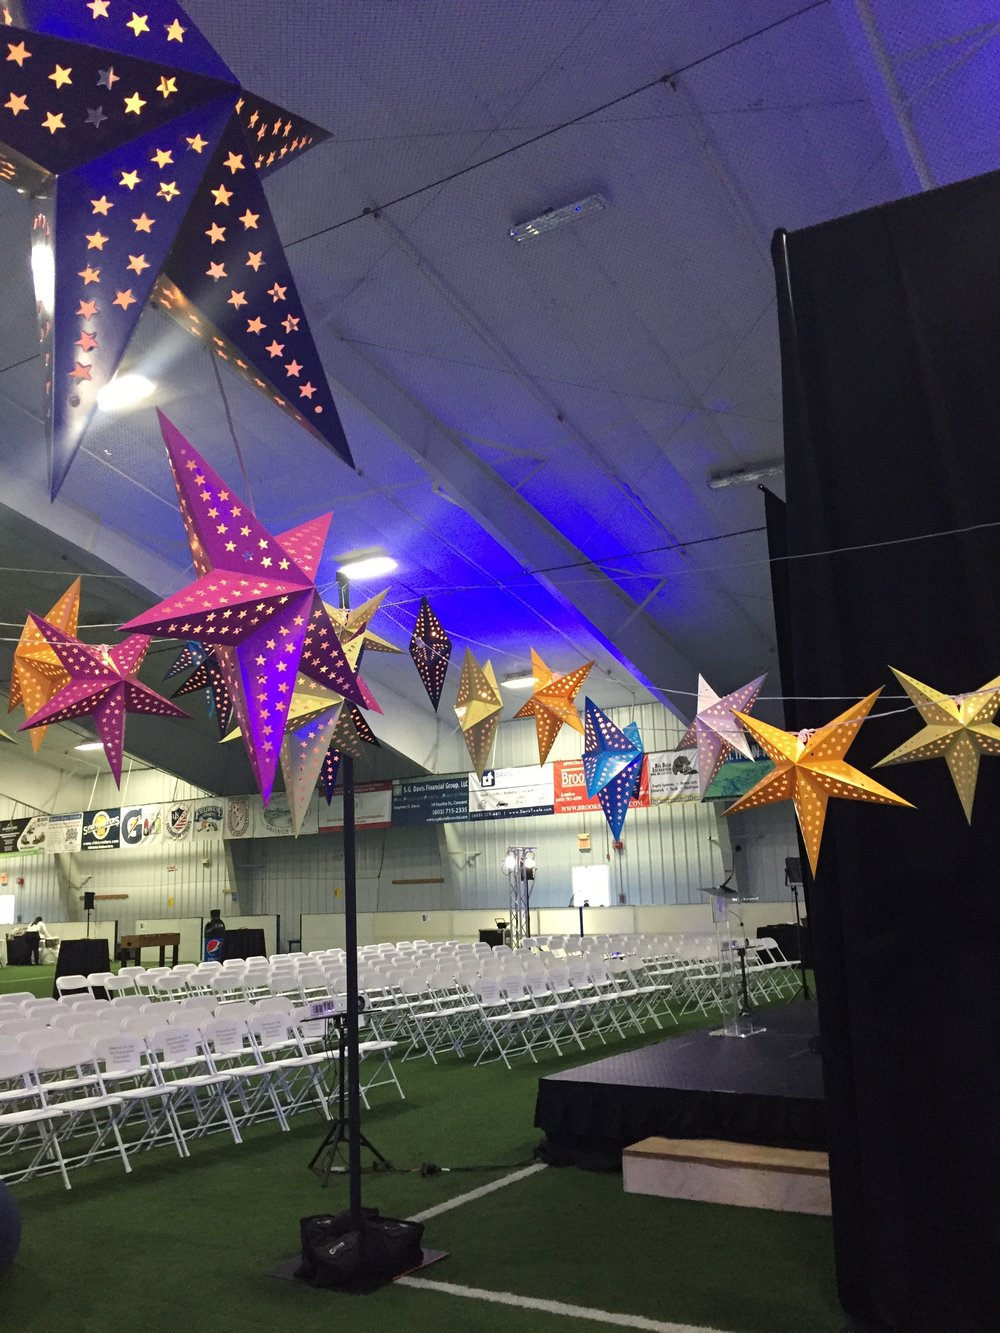 Star lanterns on cafe light strands installed with heavy bases and upright poles in a sports arena,  Fieldhouse Sports , Bow, NH.